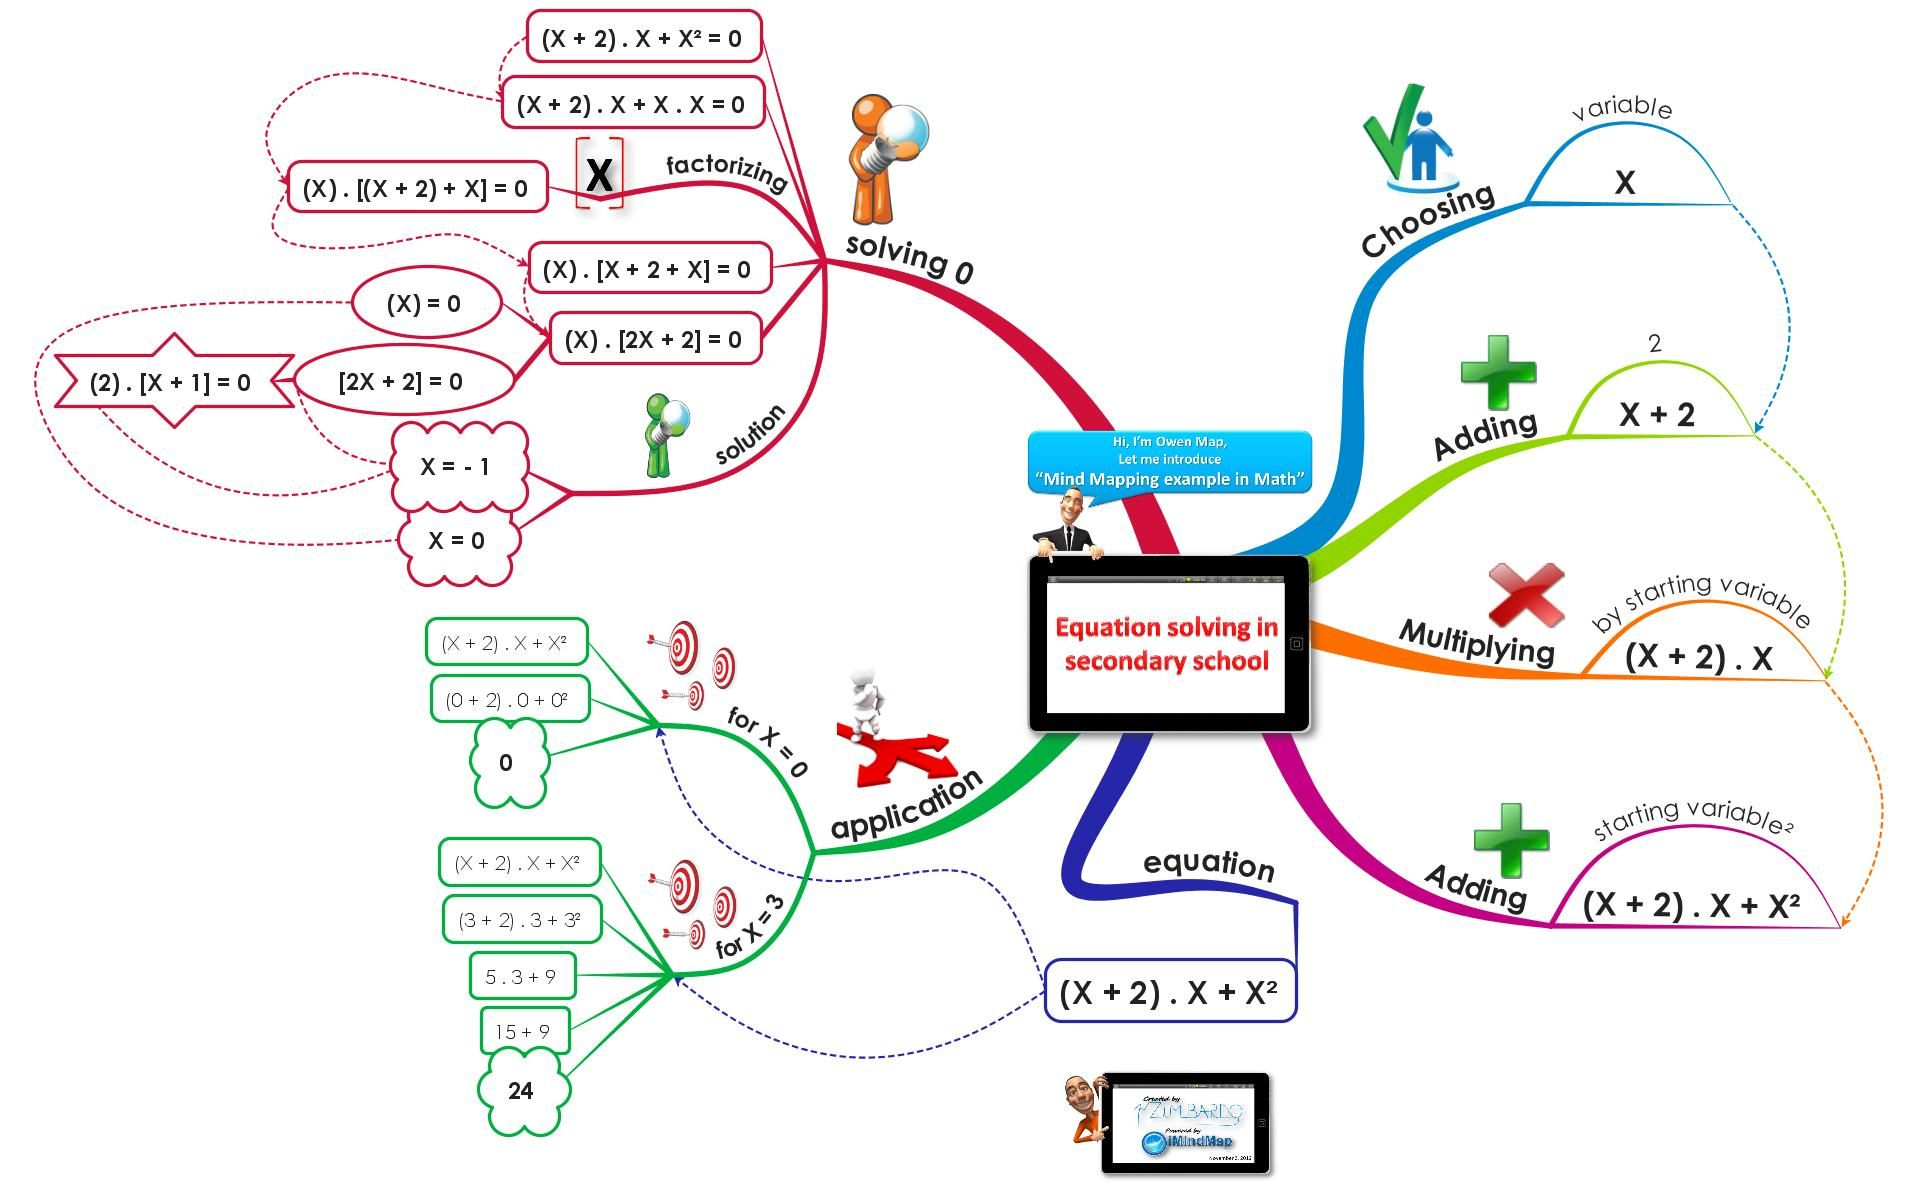 hight resolution of example of mind map in equation solving math course secondary school